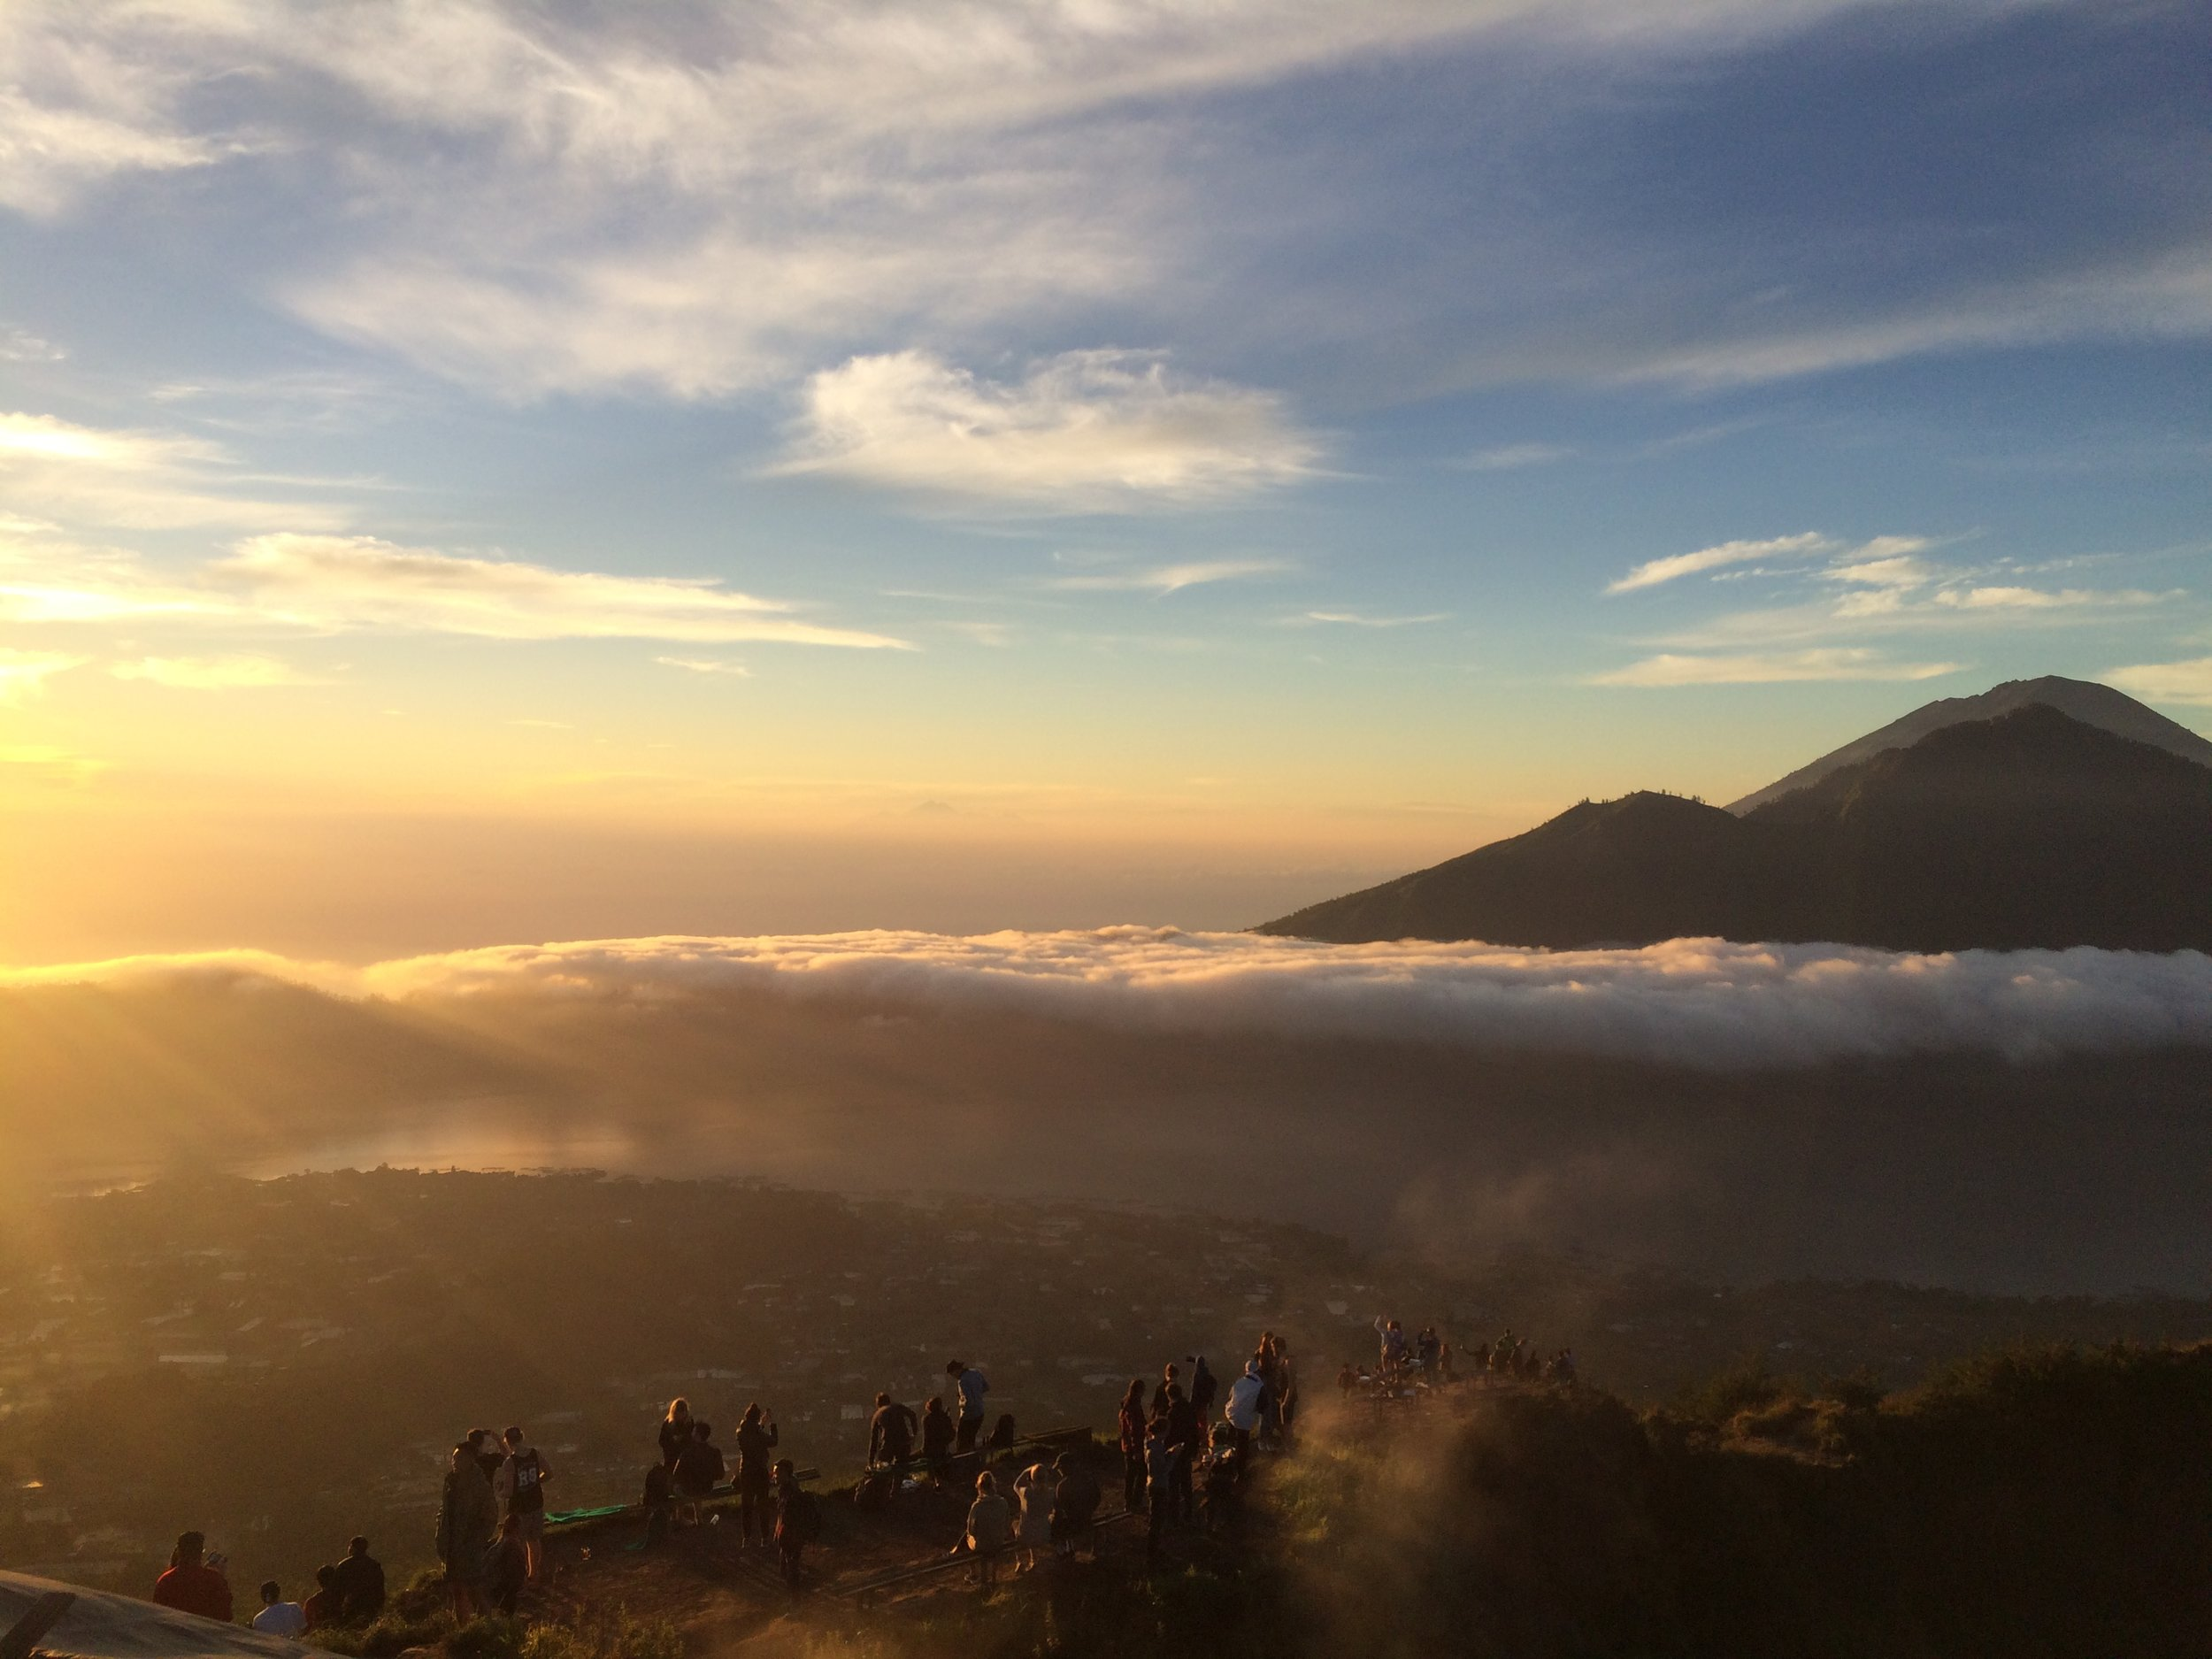 Sunrise on top of Mt. Batur.